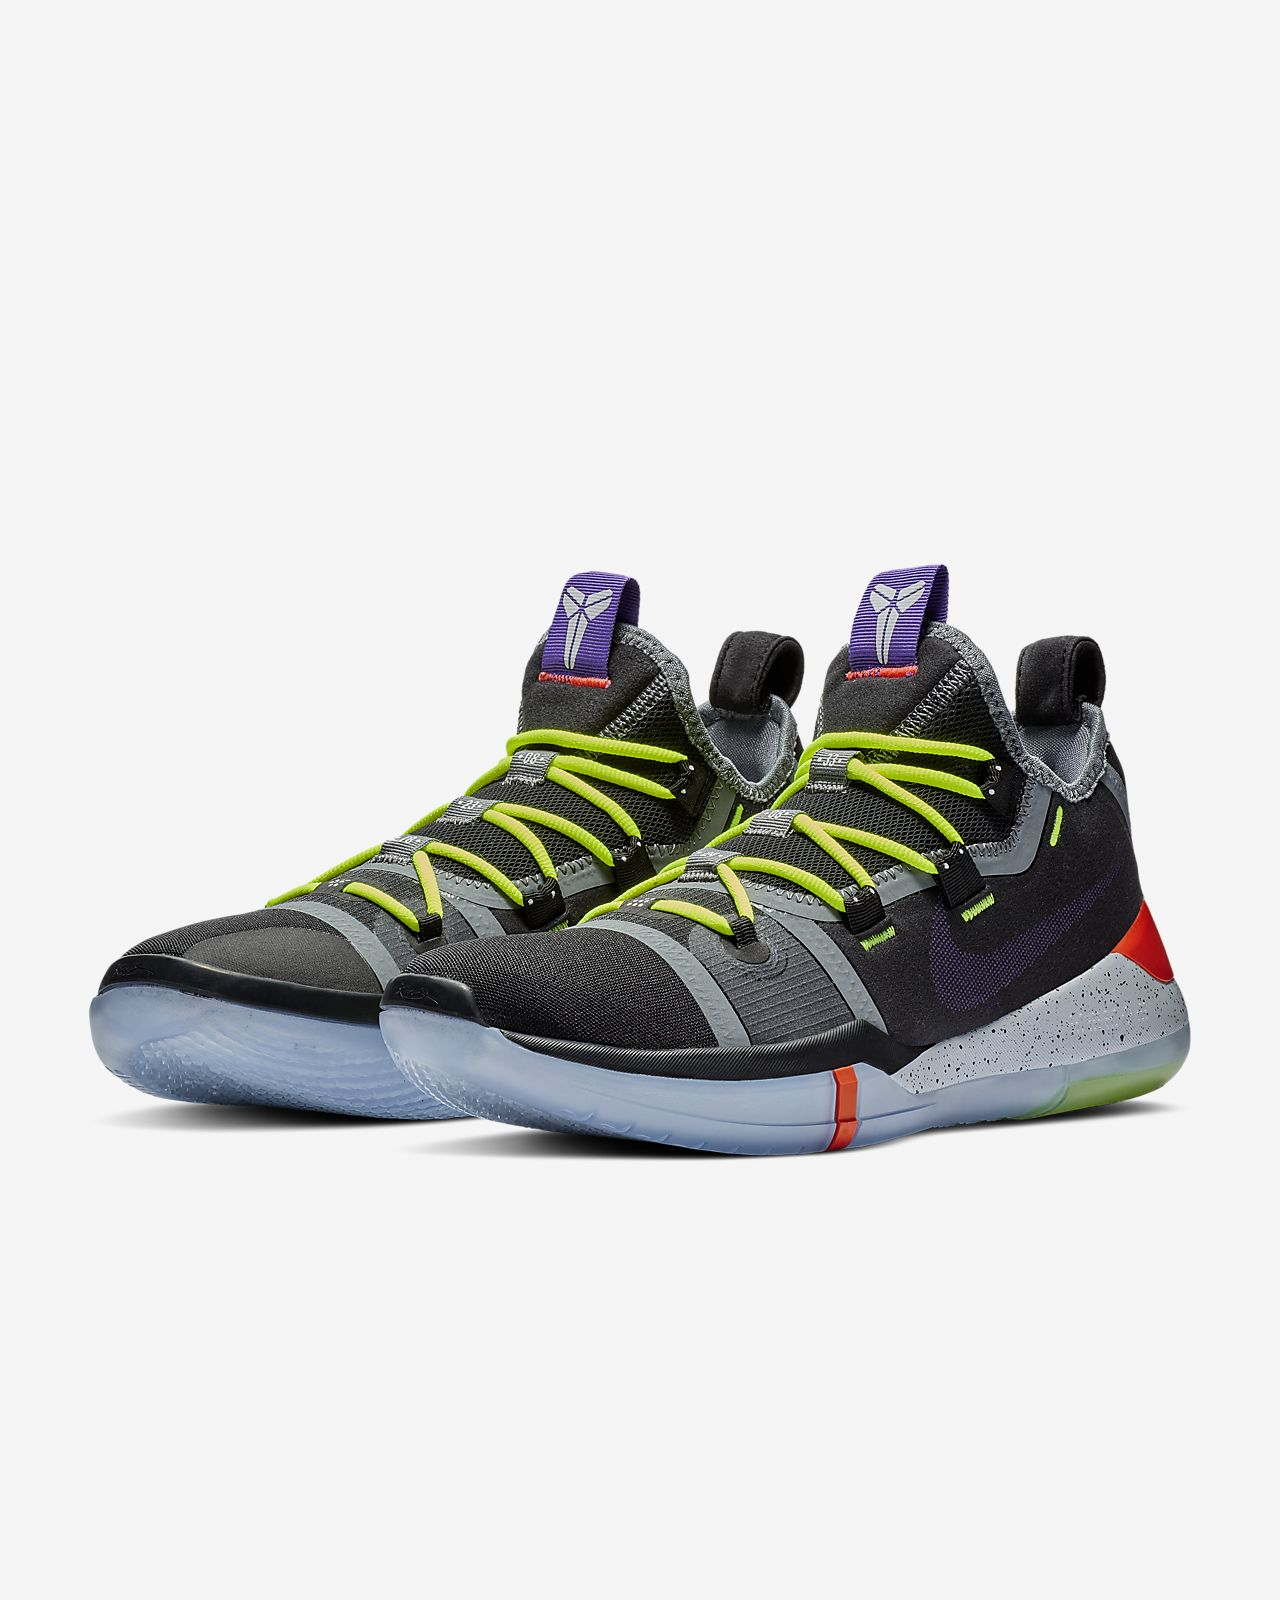 989c059298e6 Low Resolution Kobe AD Basketball Shoe Kobe AD Basketball Shoe